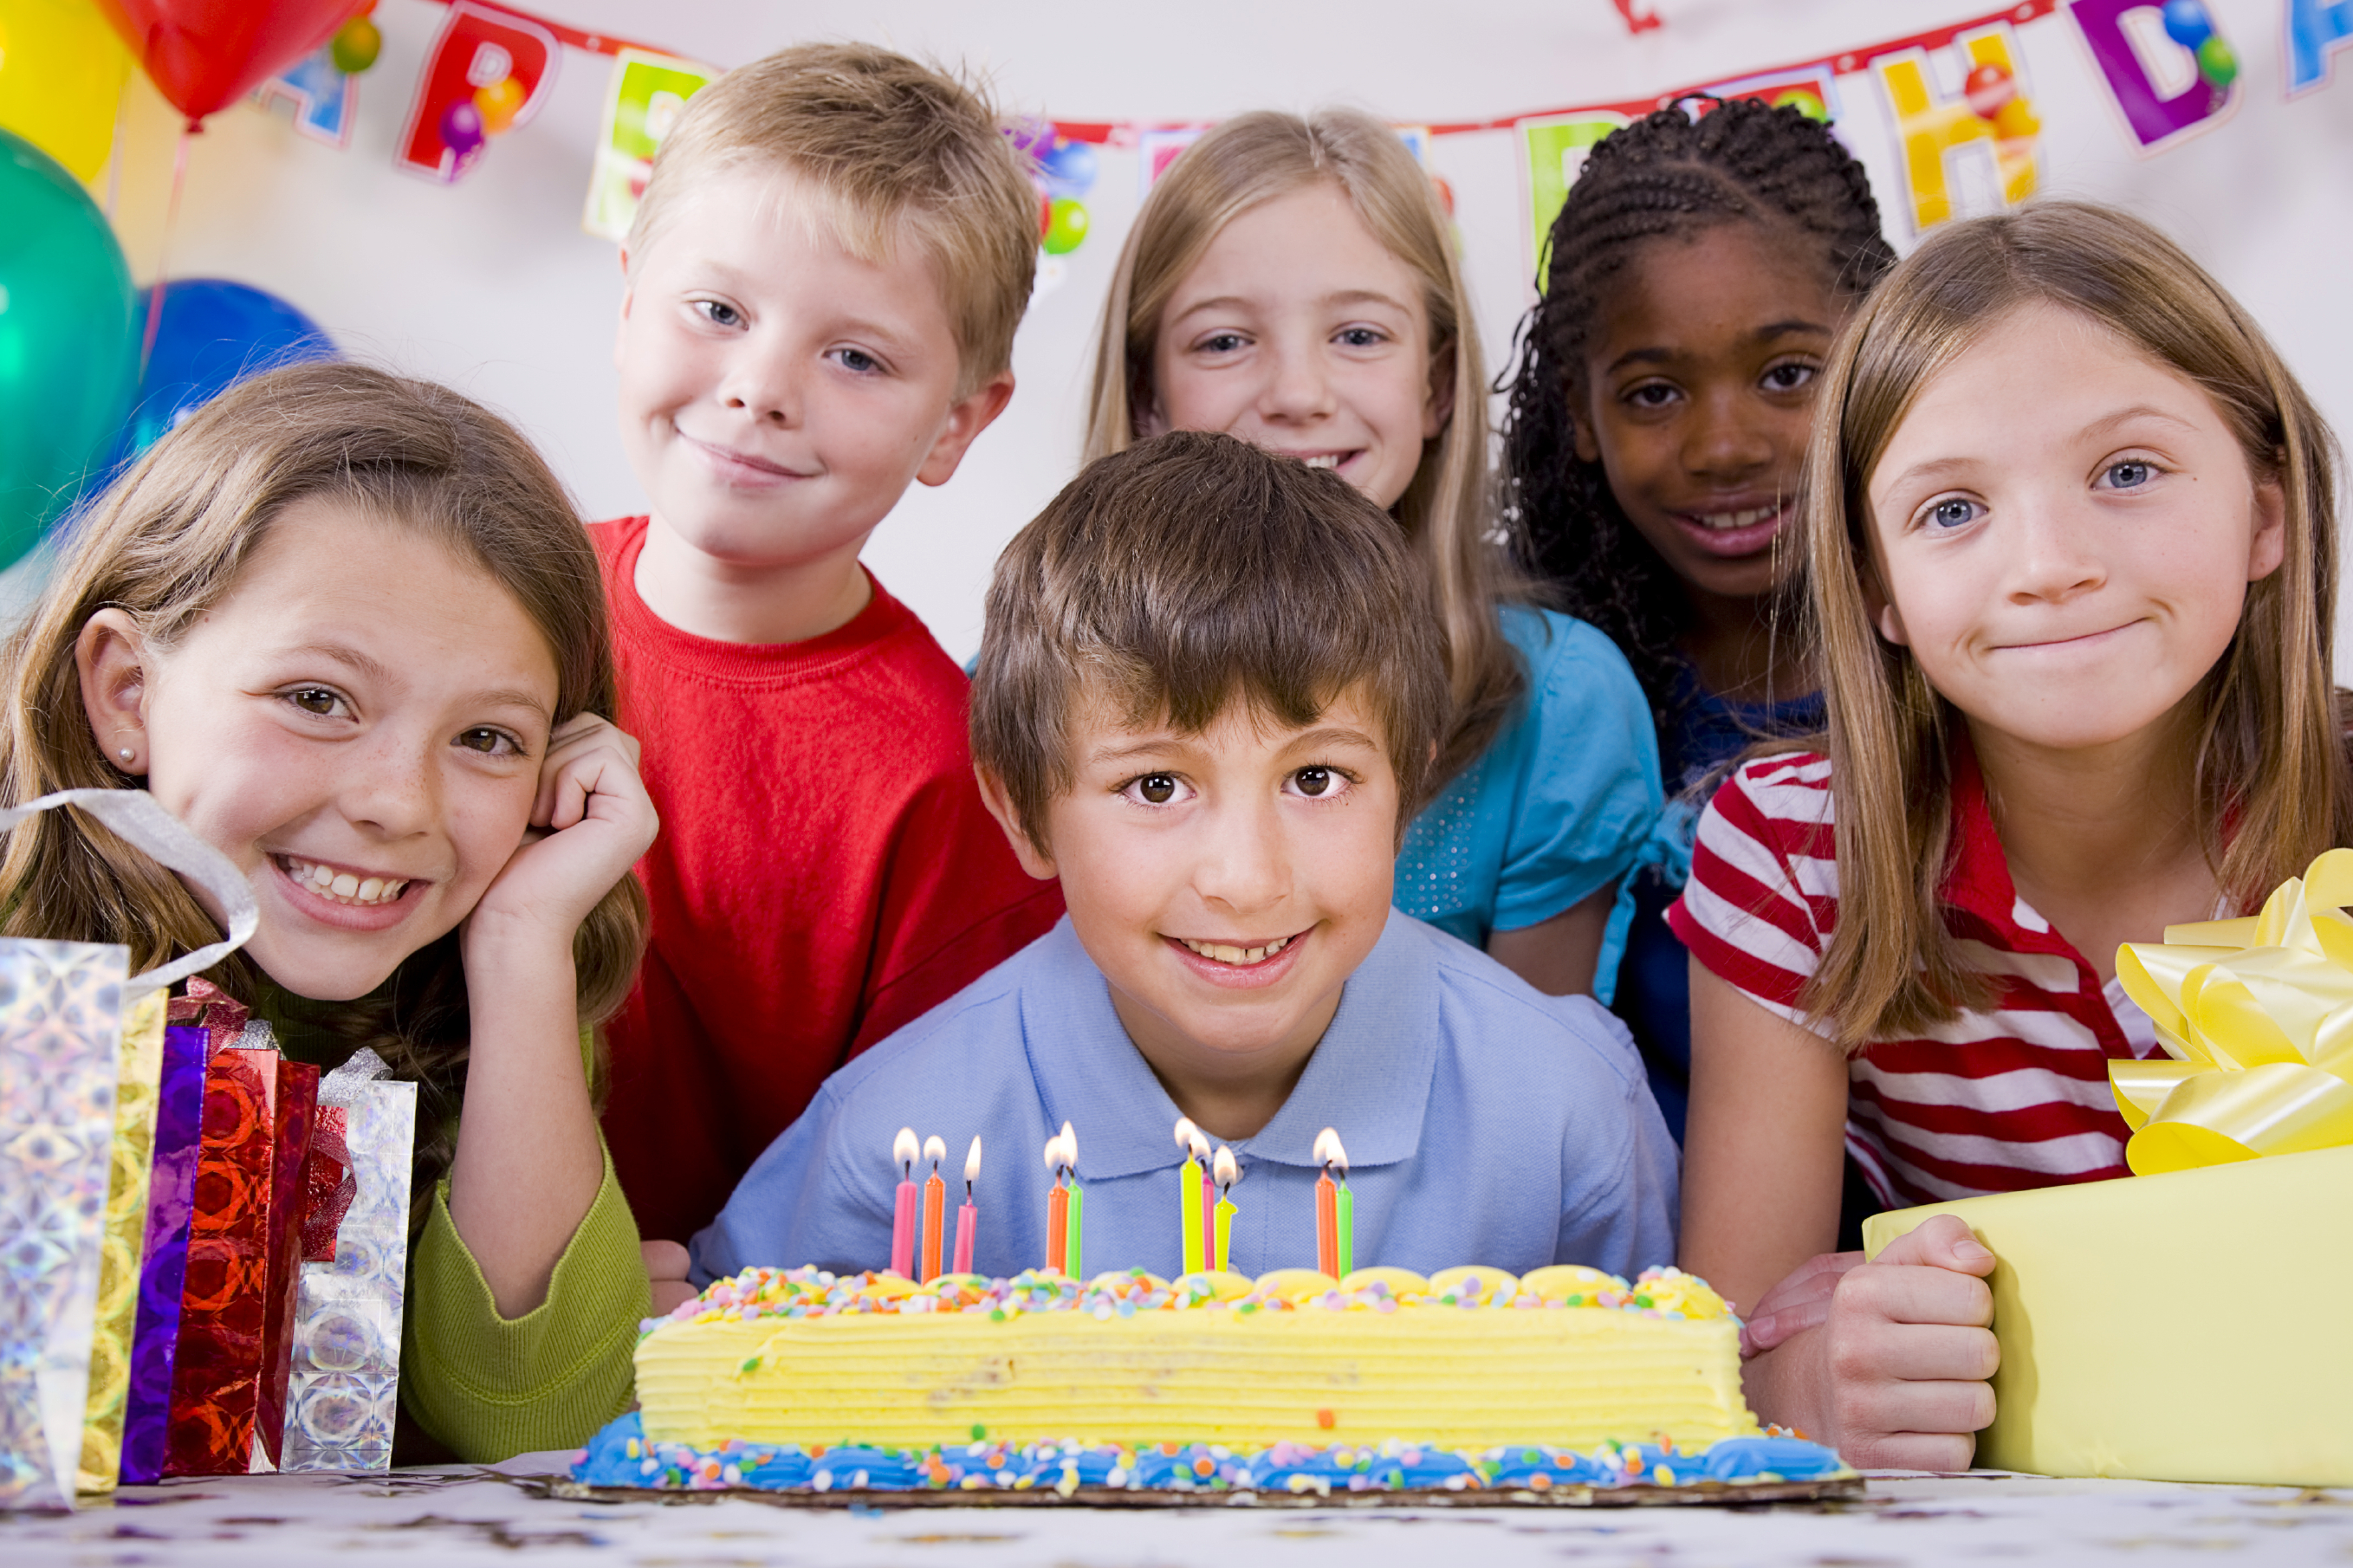 describe in birthday party Birthday do's & don'ts emily, to over-the-top parties with lavish themes, goody bags with birthday-party-size presents, and intricate cakes from gourmet bakeries.